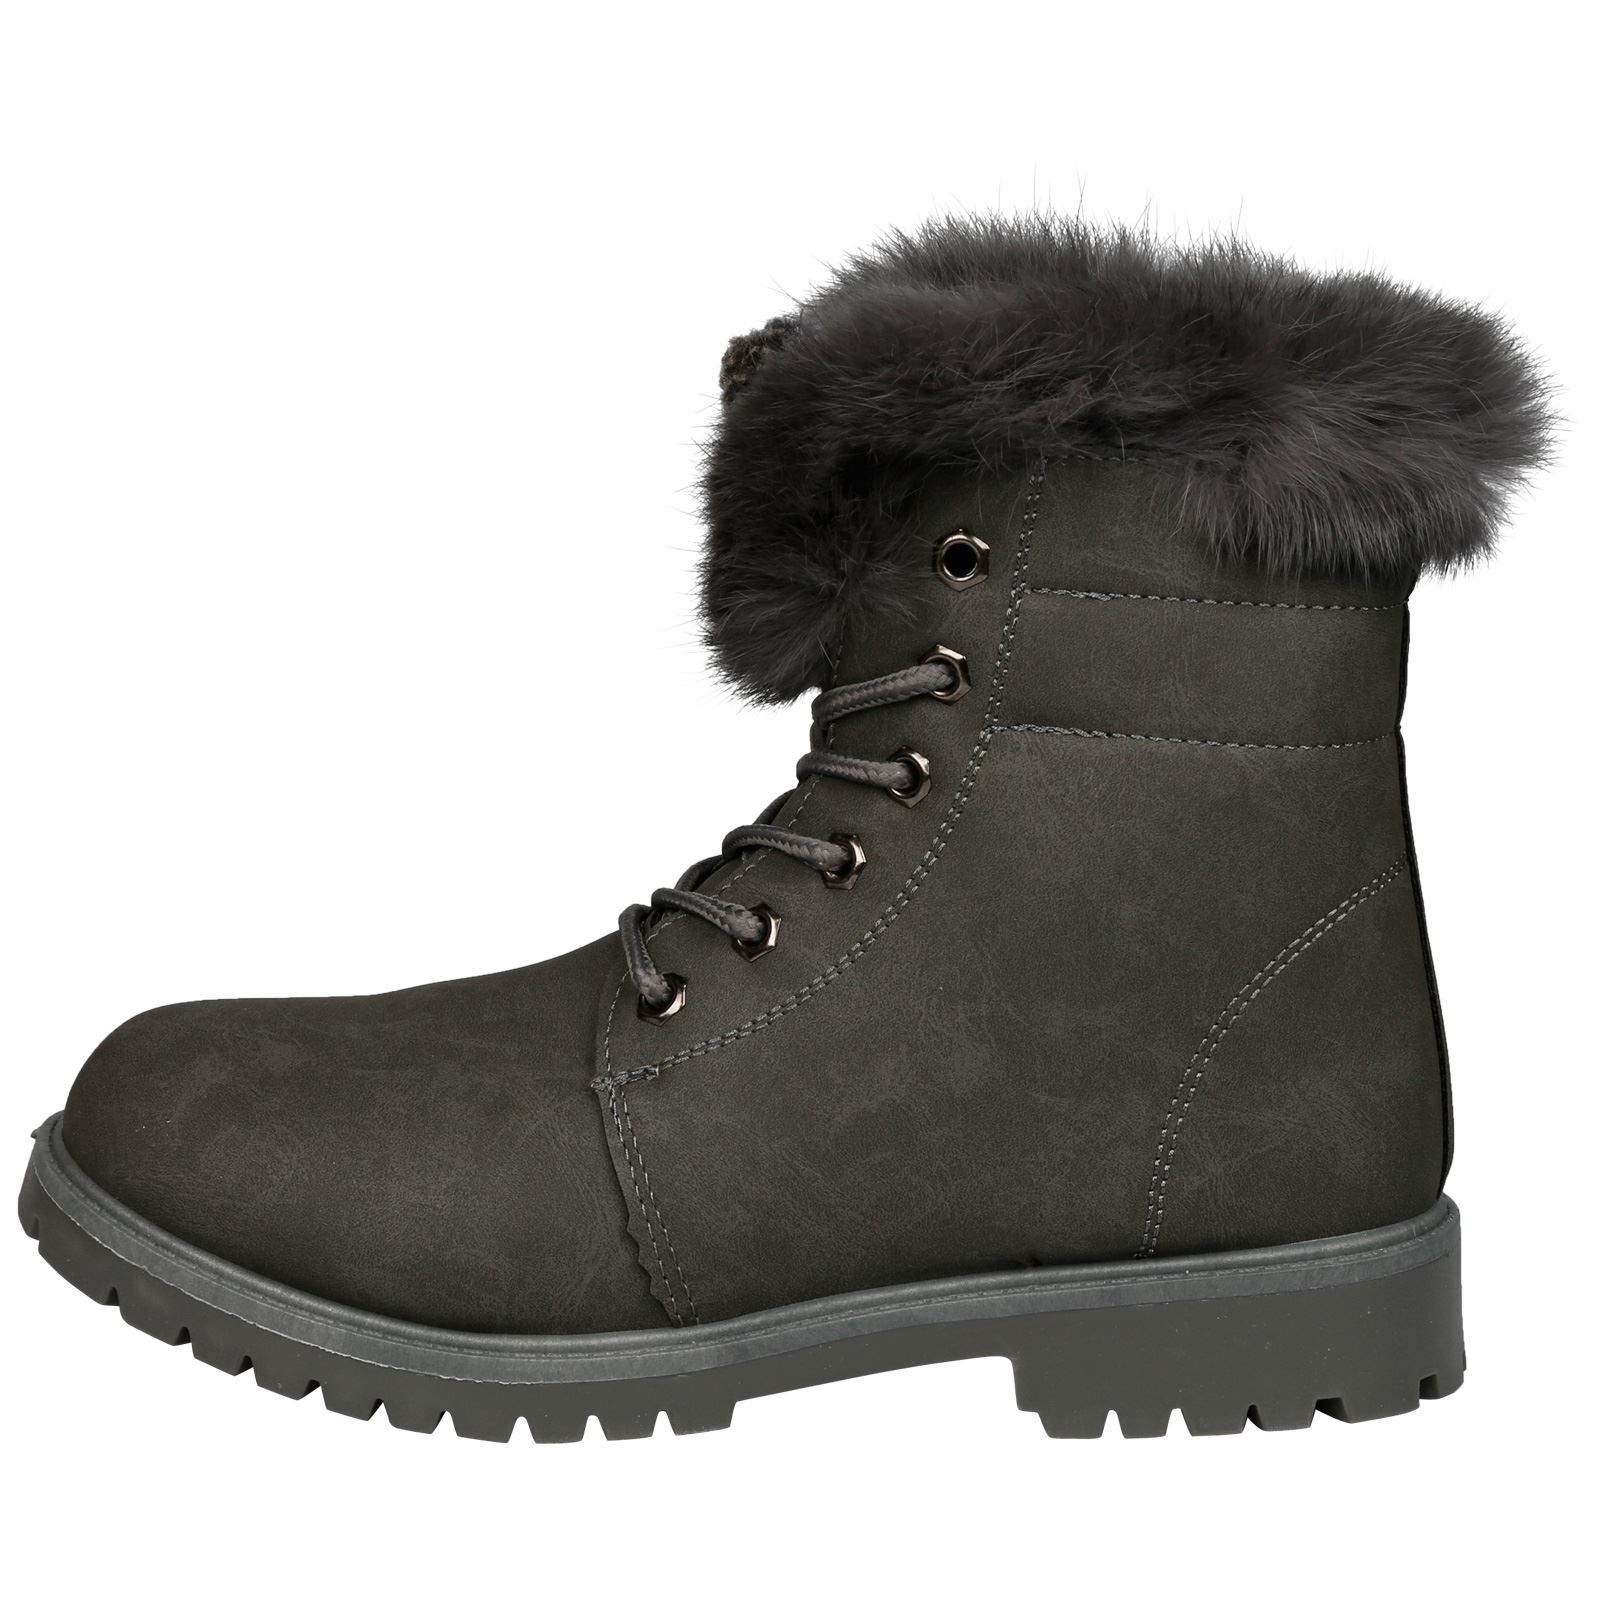 NEW-WOMEN-SHOES-LADIES-FUR-LINED-LOW-HEEL-LACE-UP-ANKLE-BOOTS-CASUAL-STYLE-SIZE thumbnail 20